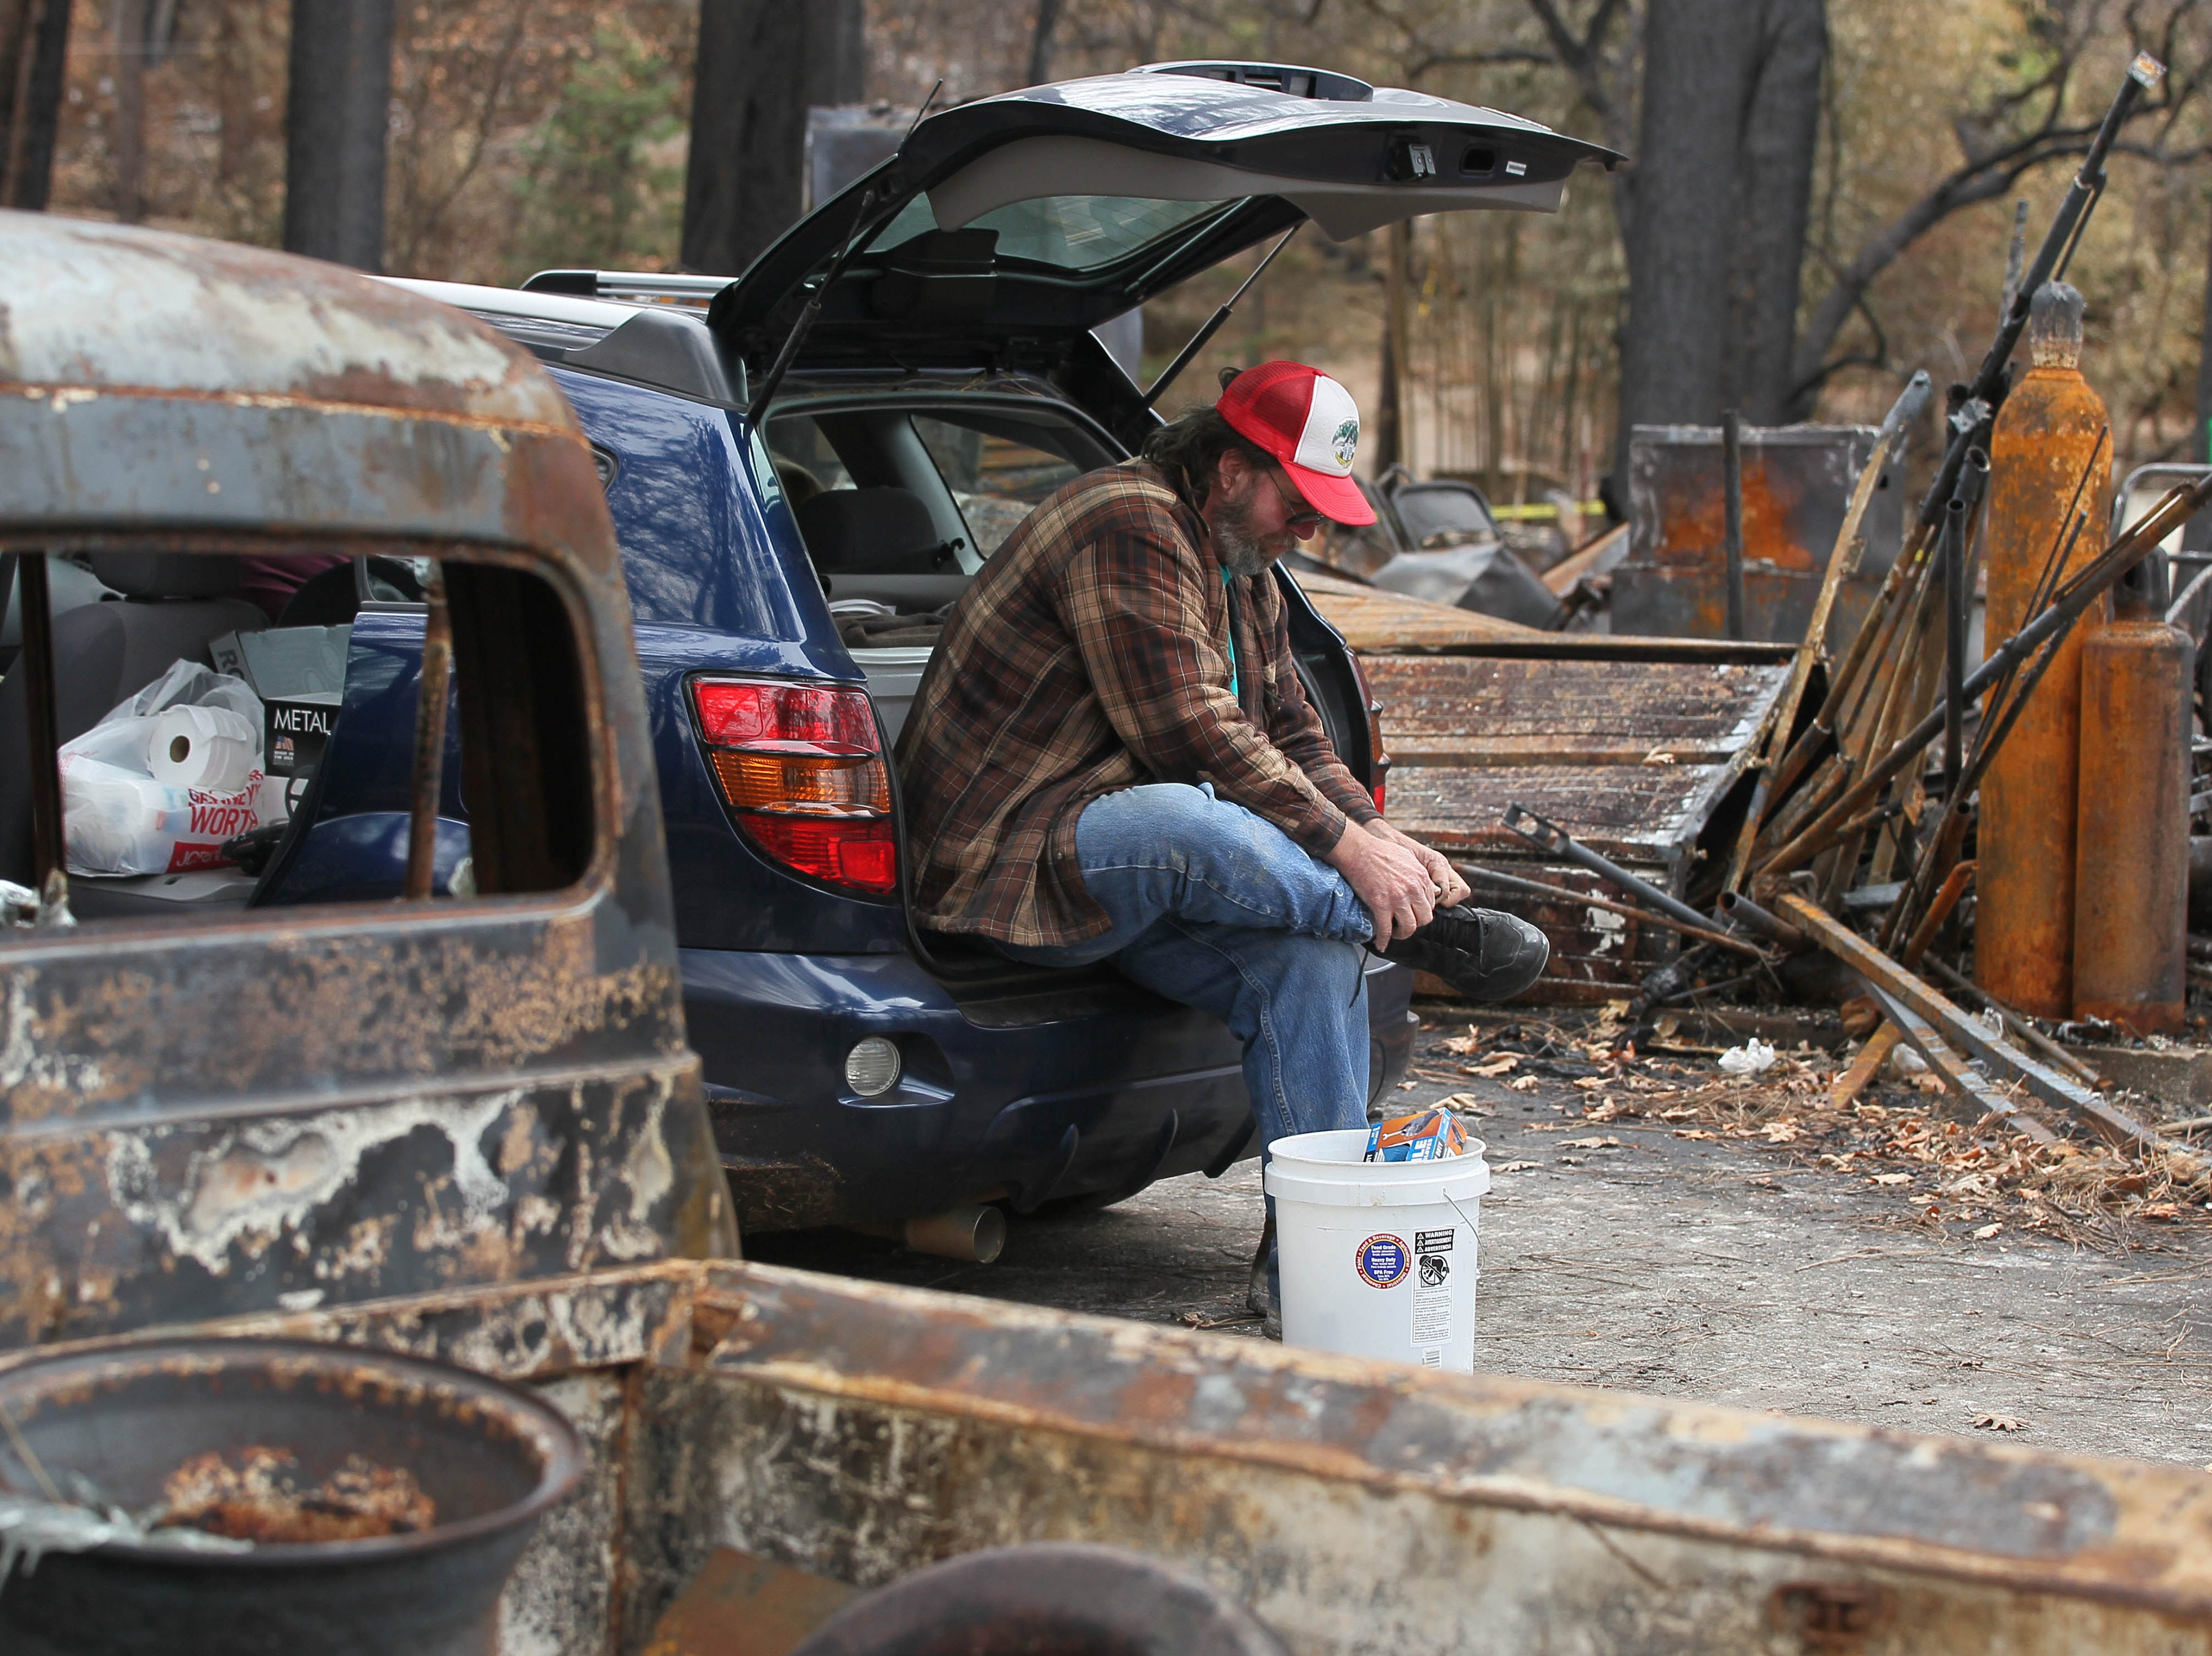 Stan Chormicle changes his shoes in the back of his car after he and his wife salvage items at his burned house in Paradise.